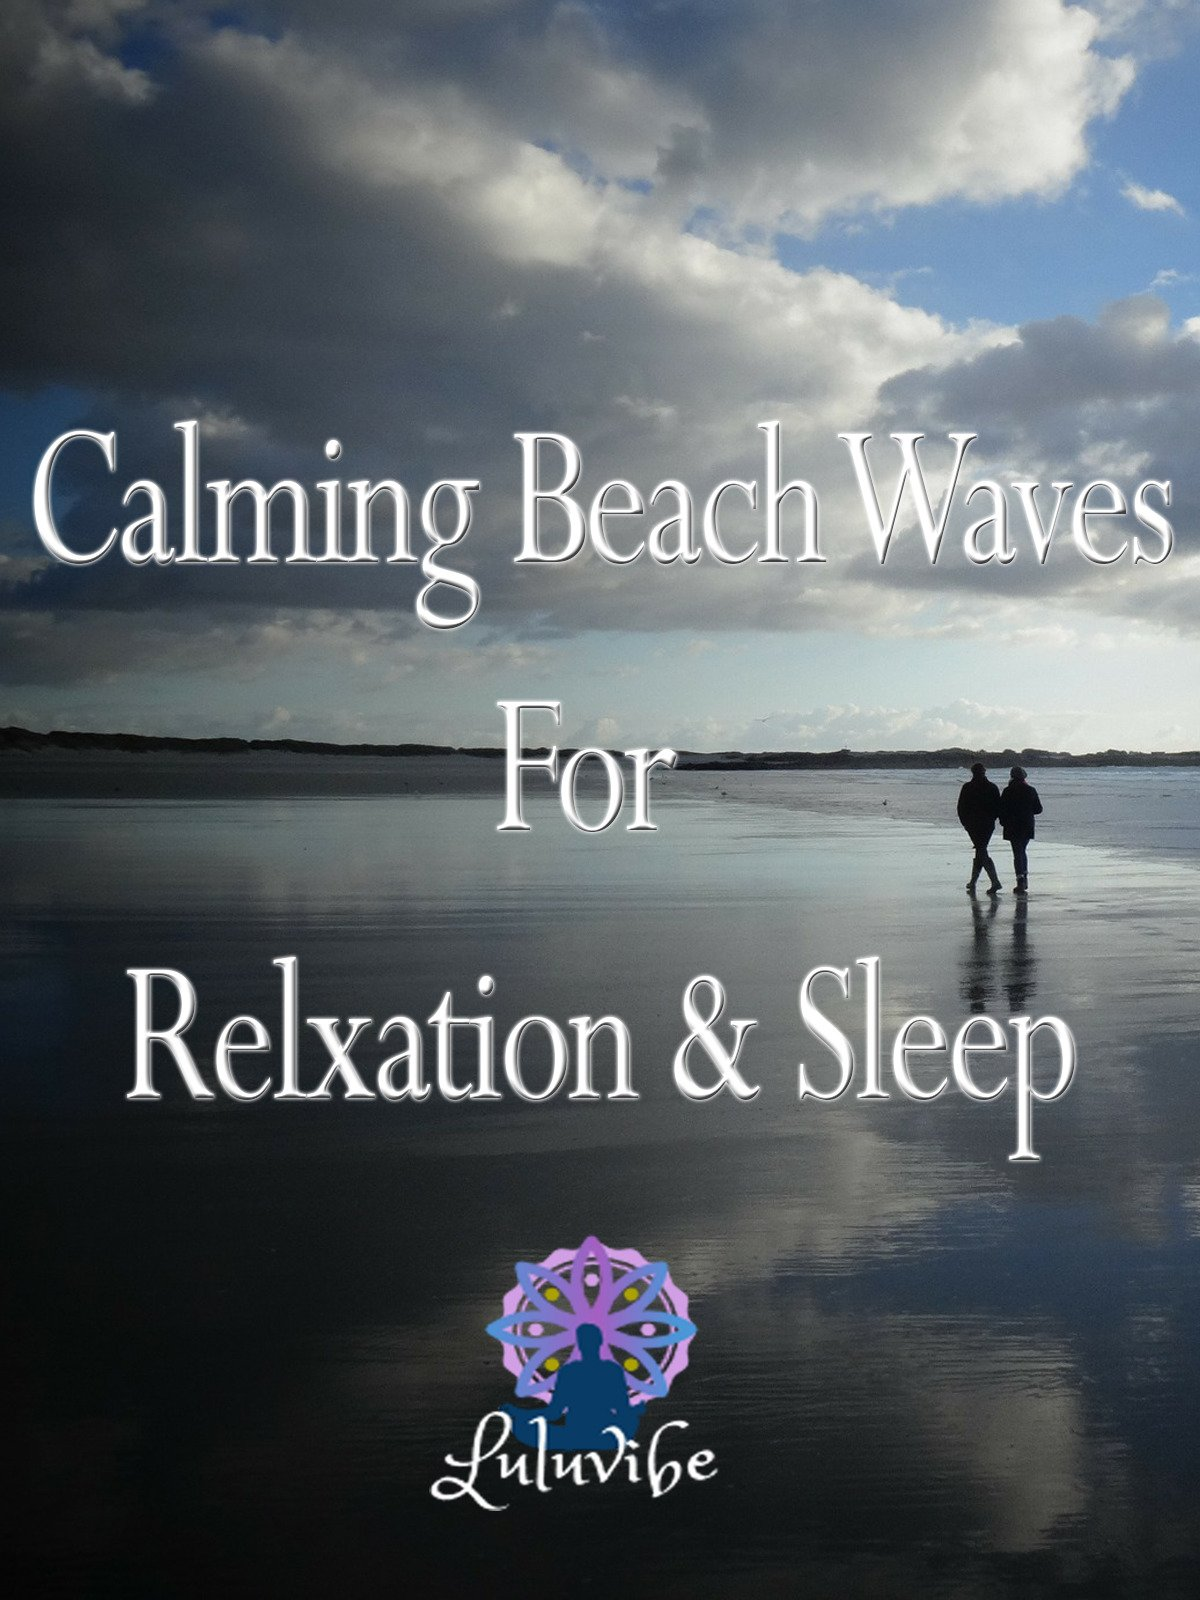 Calming Beach Waves For Relaxation & Sleep